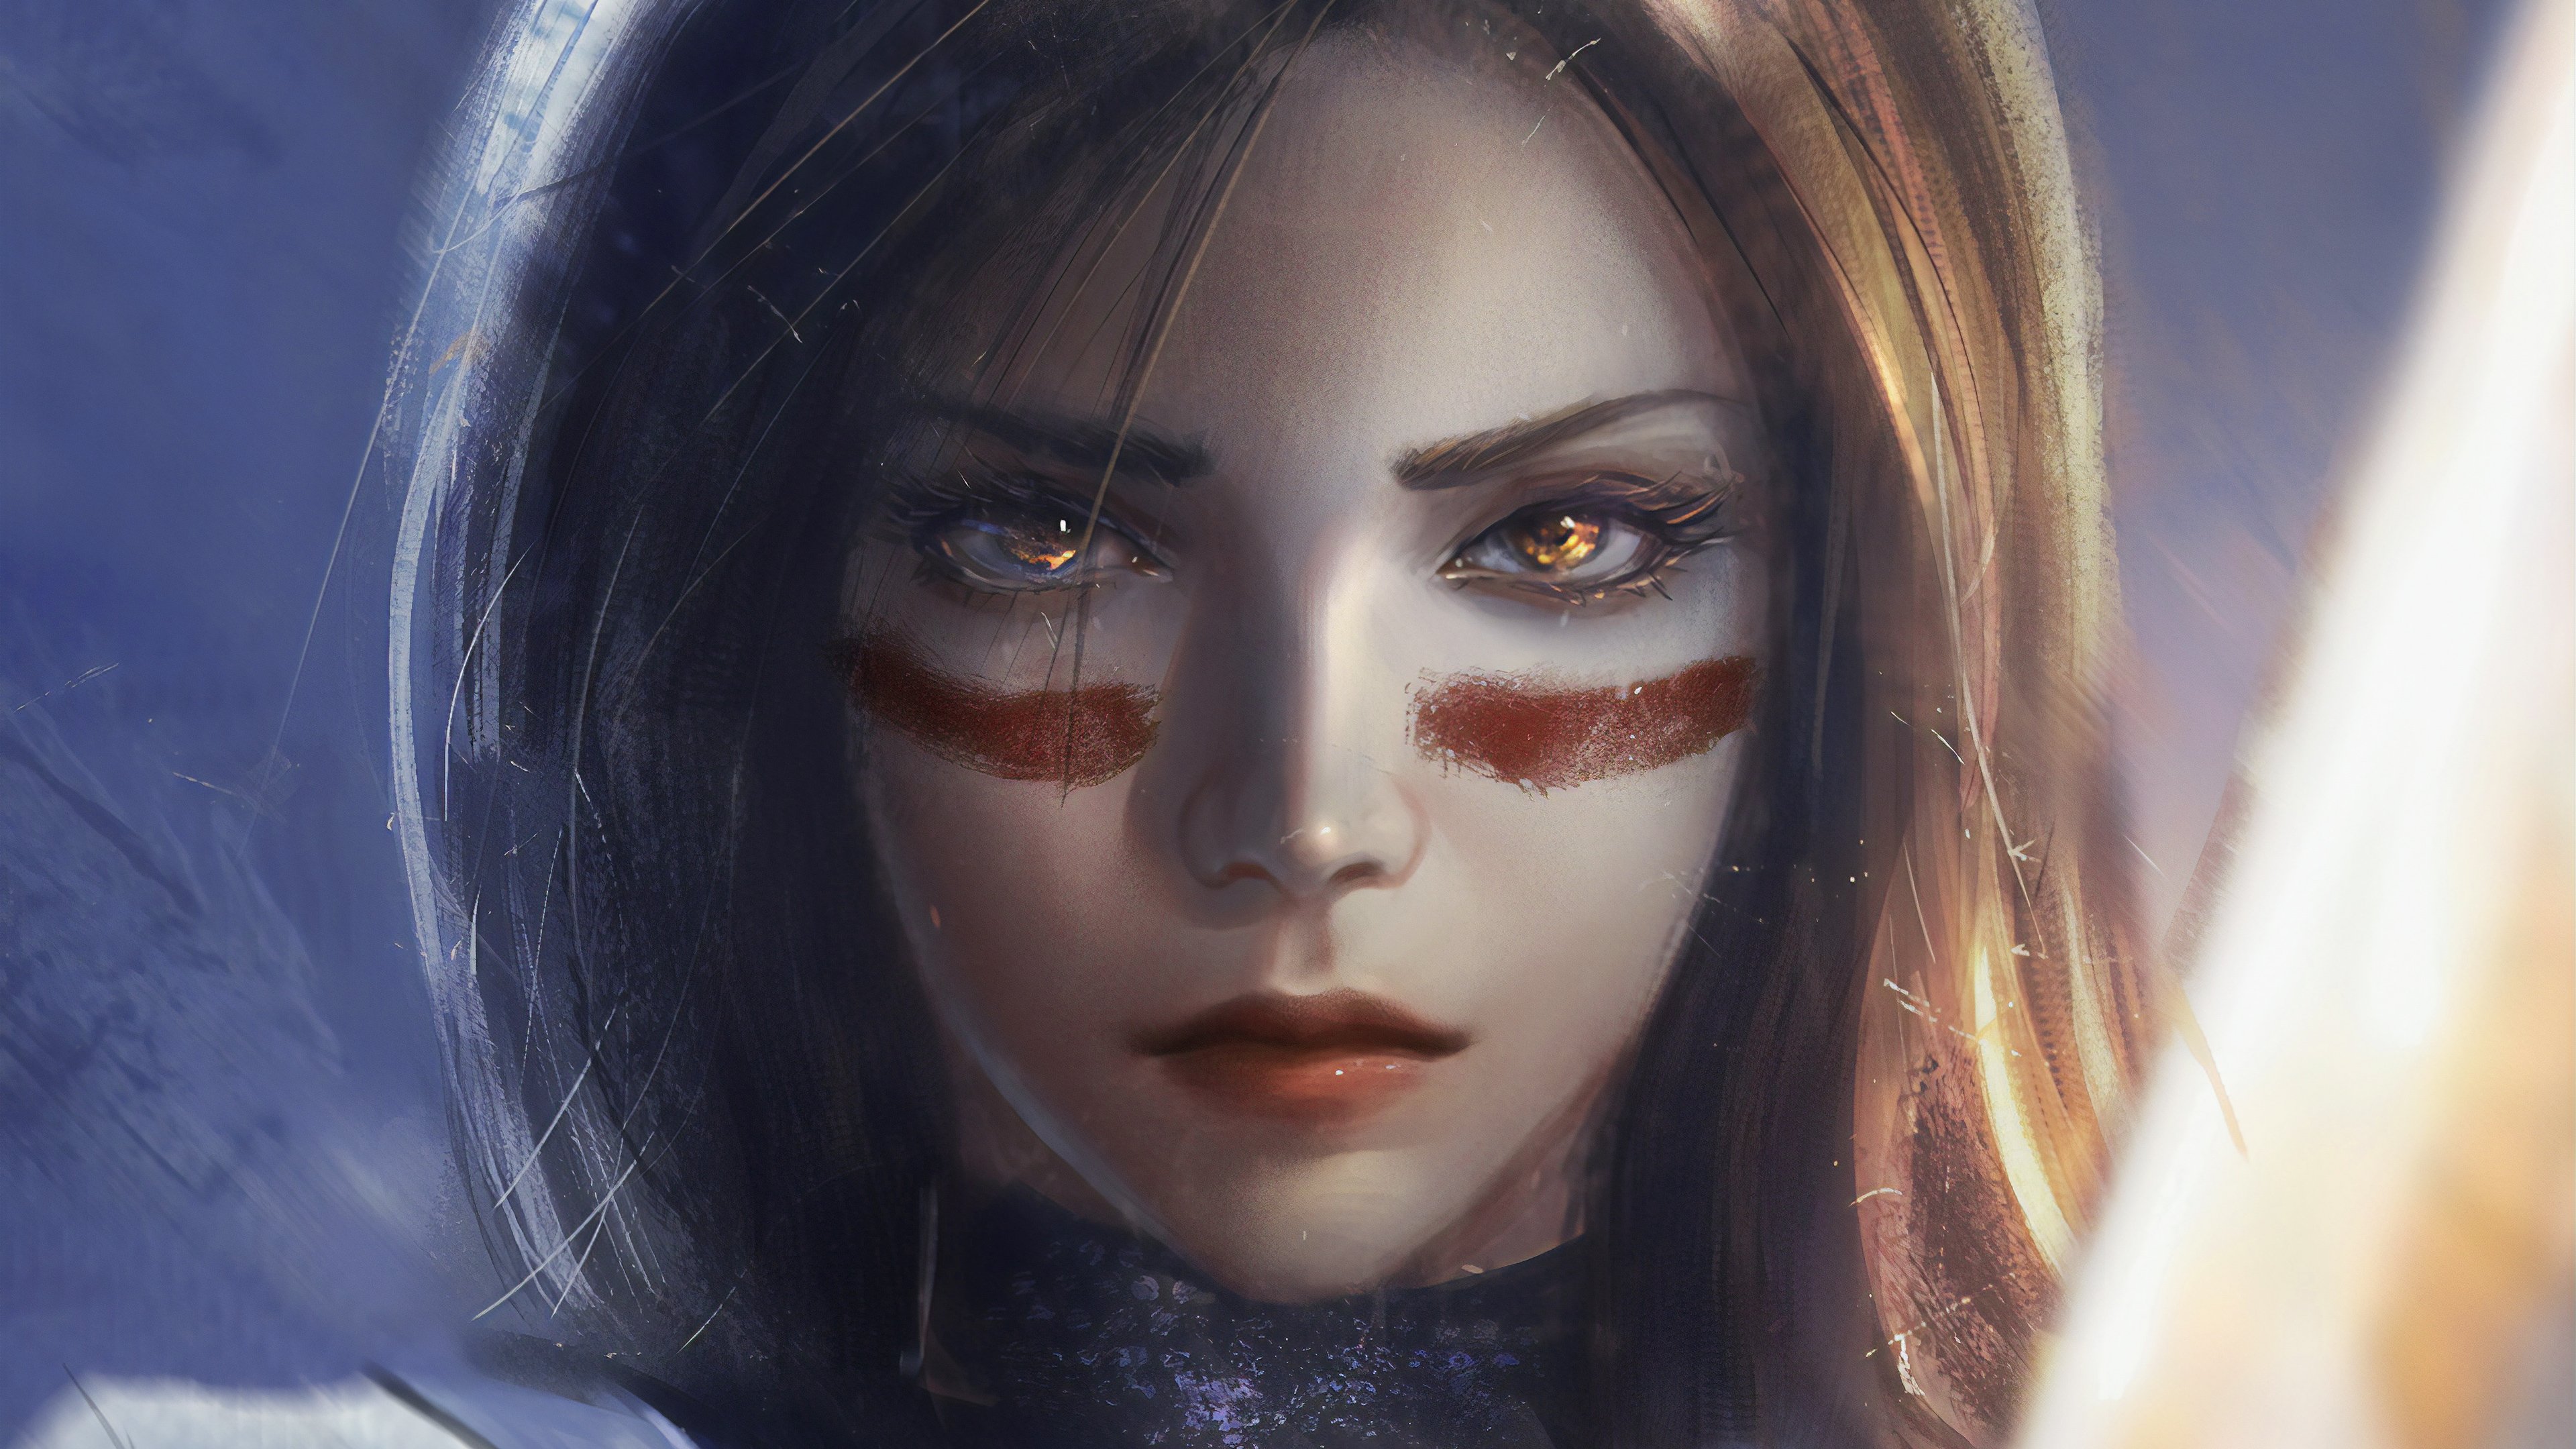 alita fan art 1560535011 - Alita Fan Art - movies wallpapers, hd-wallpapers, digital art wallpapers, deviantart wallpapers, artwork wallpapers, artist wallpapers, alita battle angel wallpapers, 4k-wallpapers, 2019 movies wallpapers